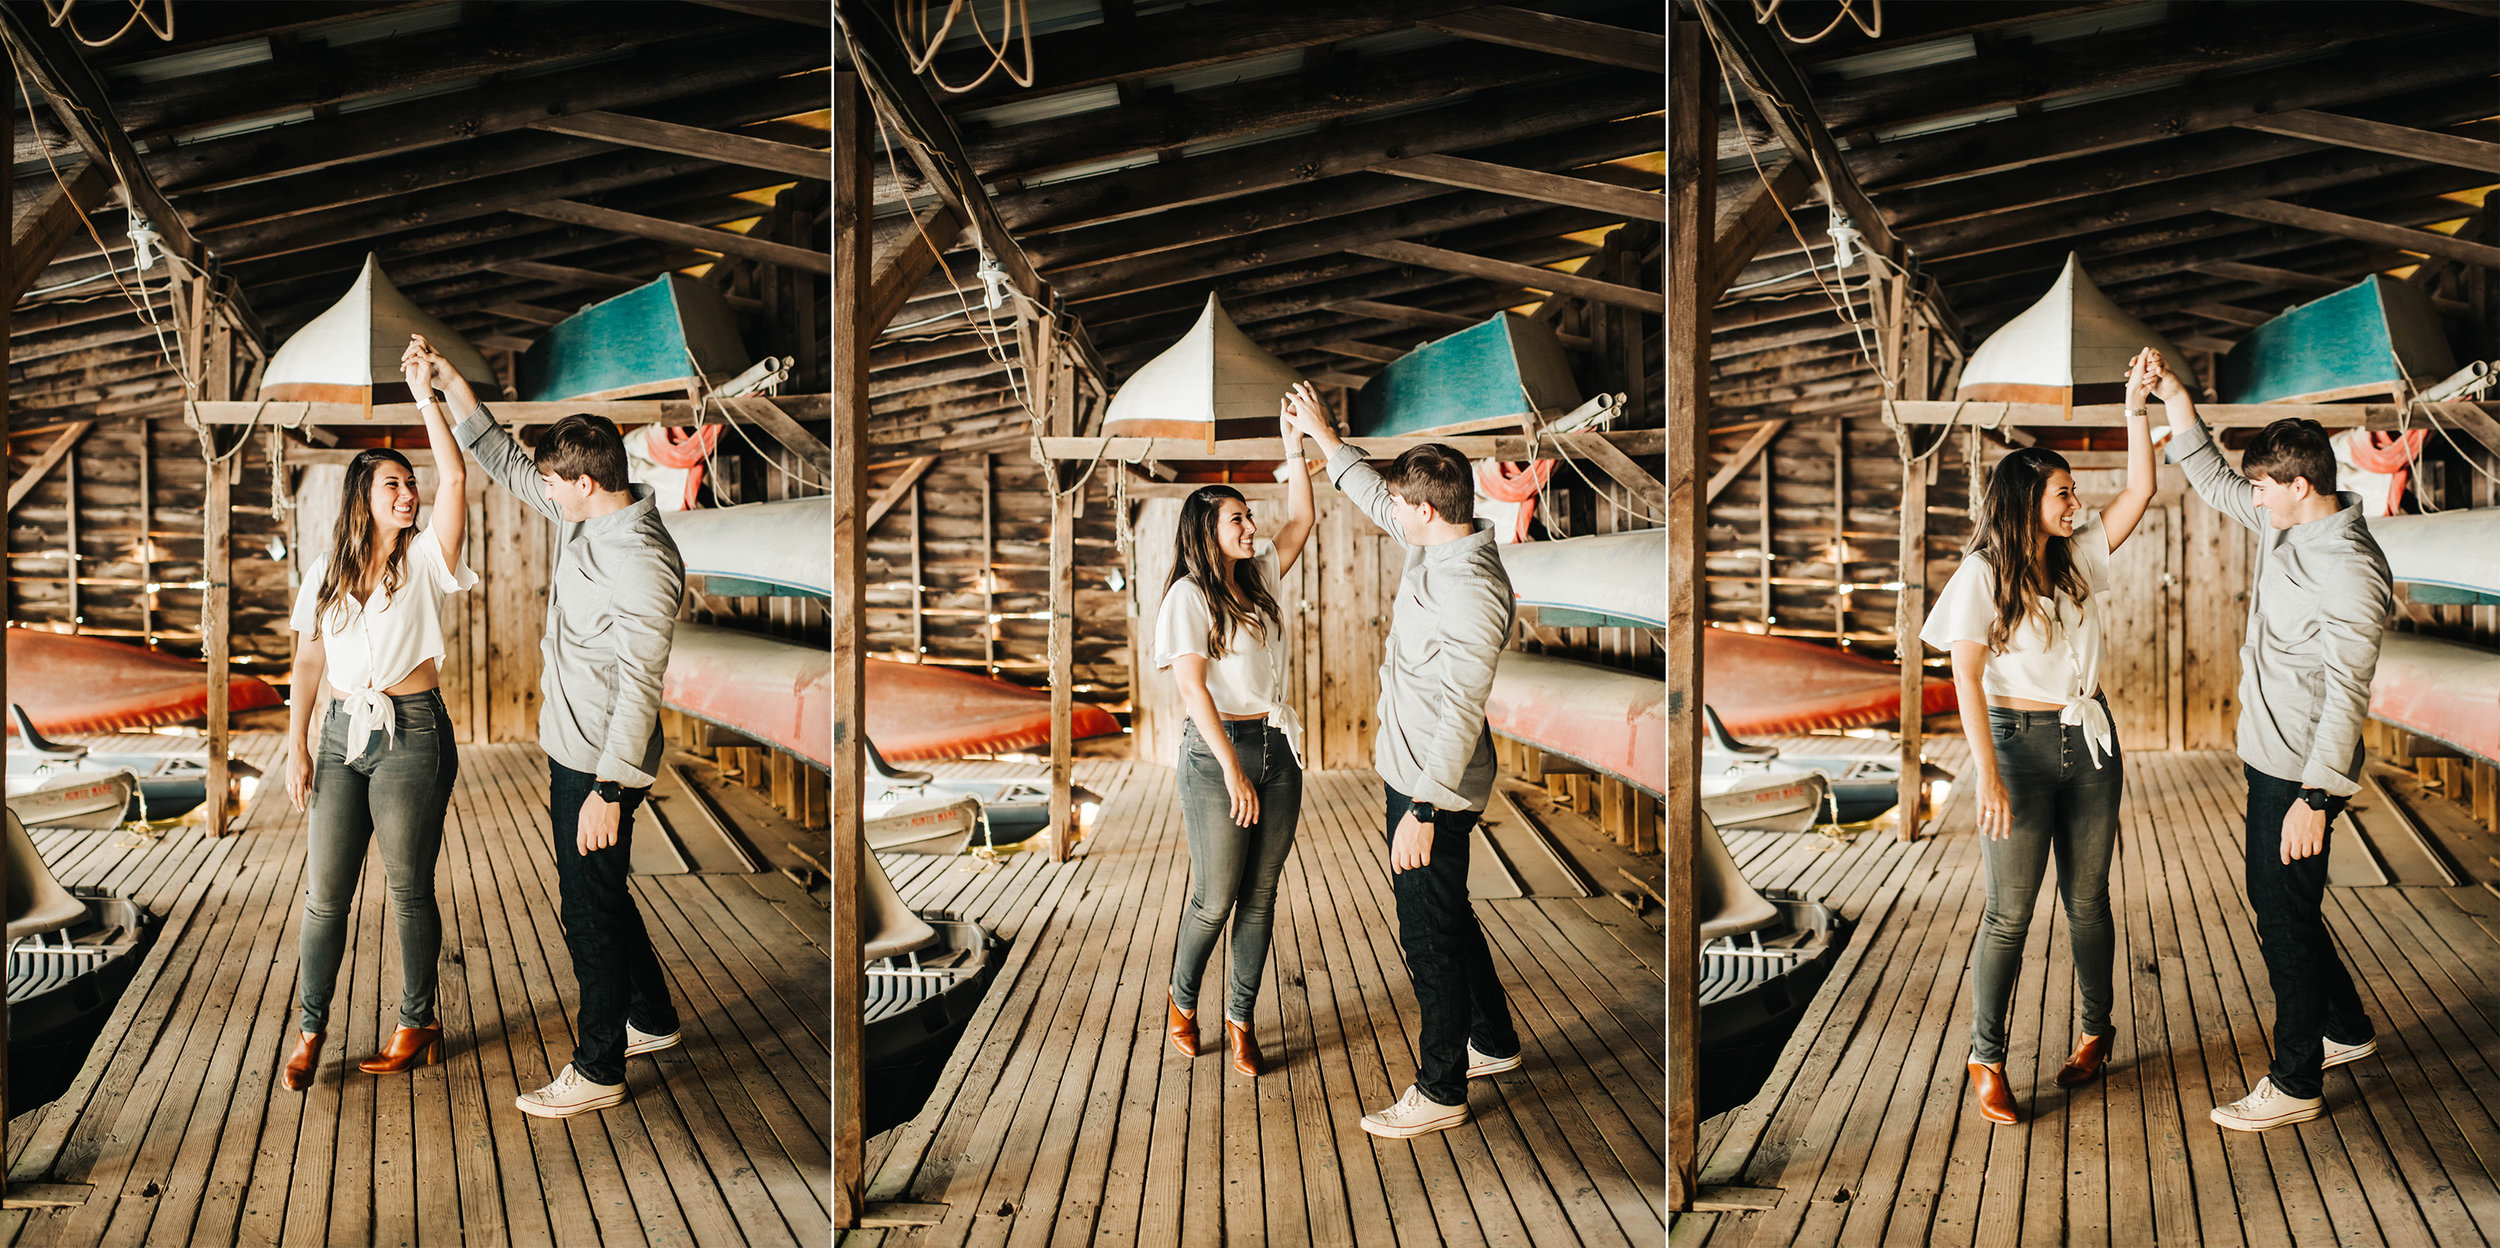 san francisco oakland bay area california sf atlanta georgia camp wes anderson moonrise kingdom inspired canoe engagement nontraditional wedding photographer -181.jpg